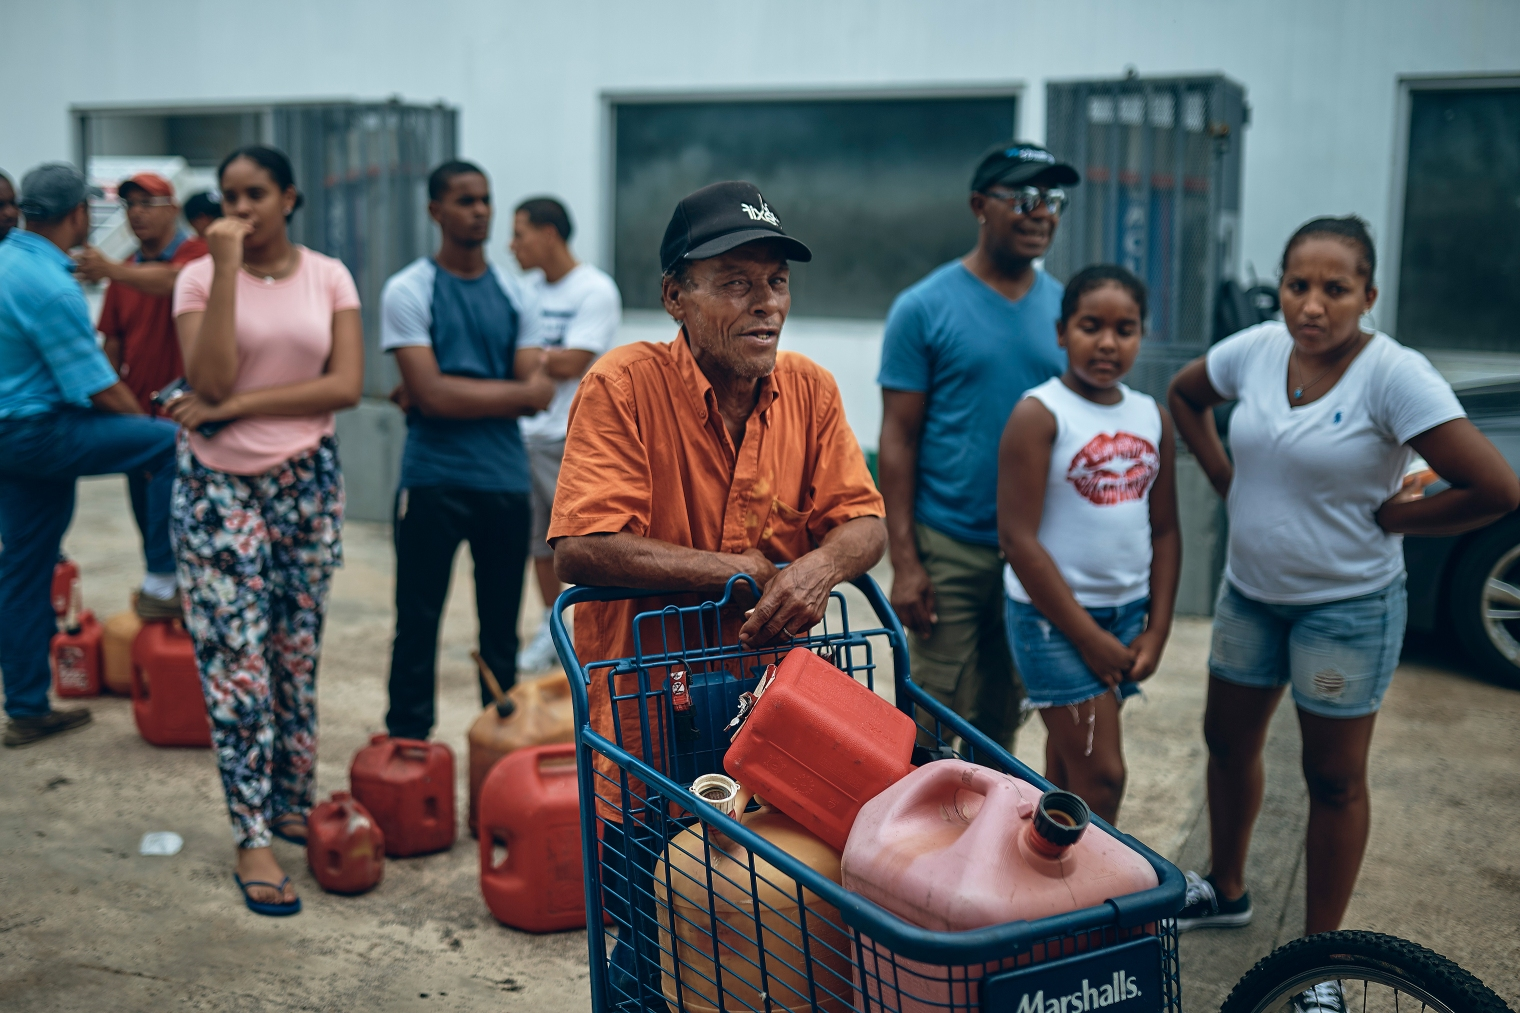 People wait in line to get fuel from a gas station in San Juan, Puerto Rico, on Sept. 30, 2017.